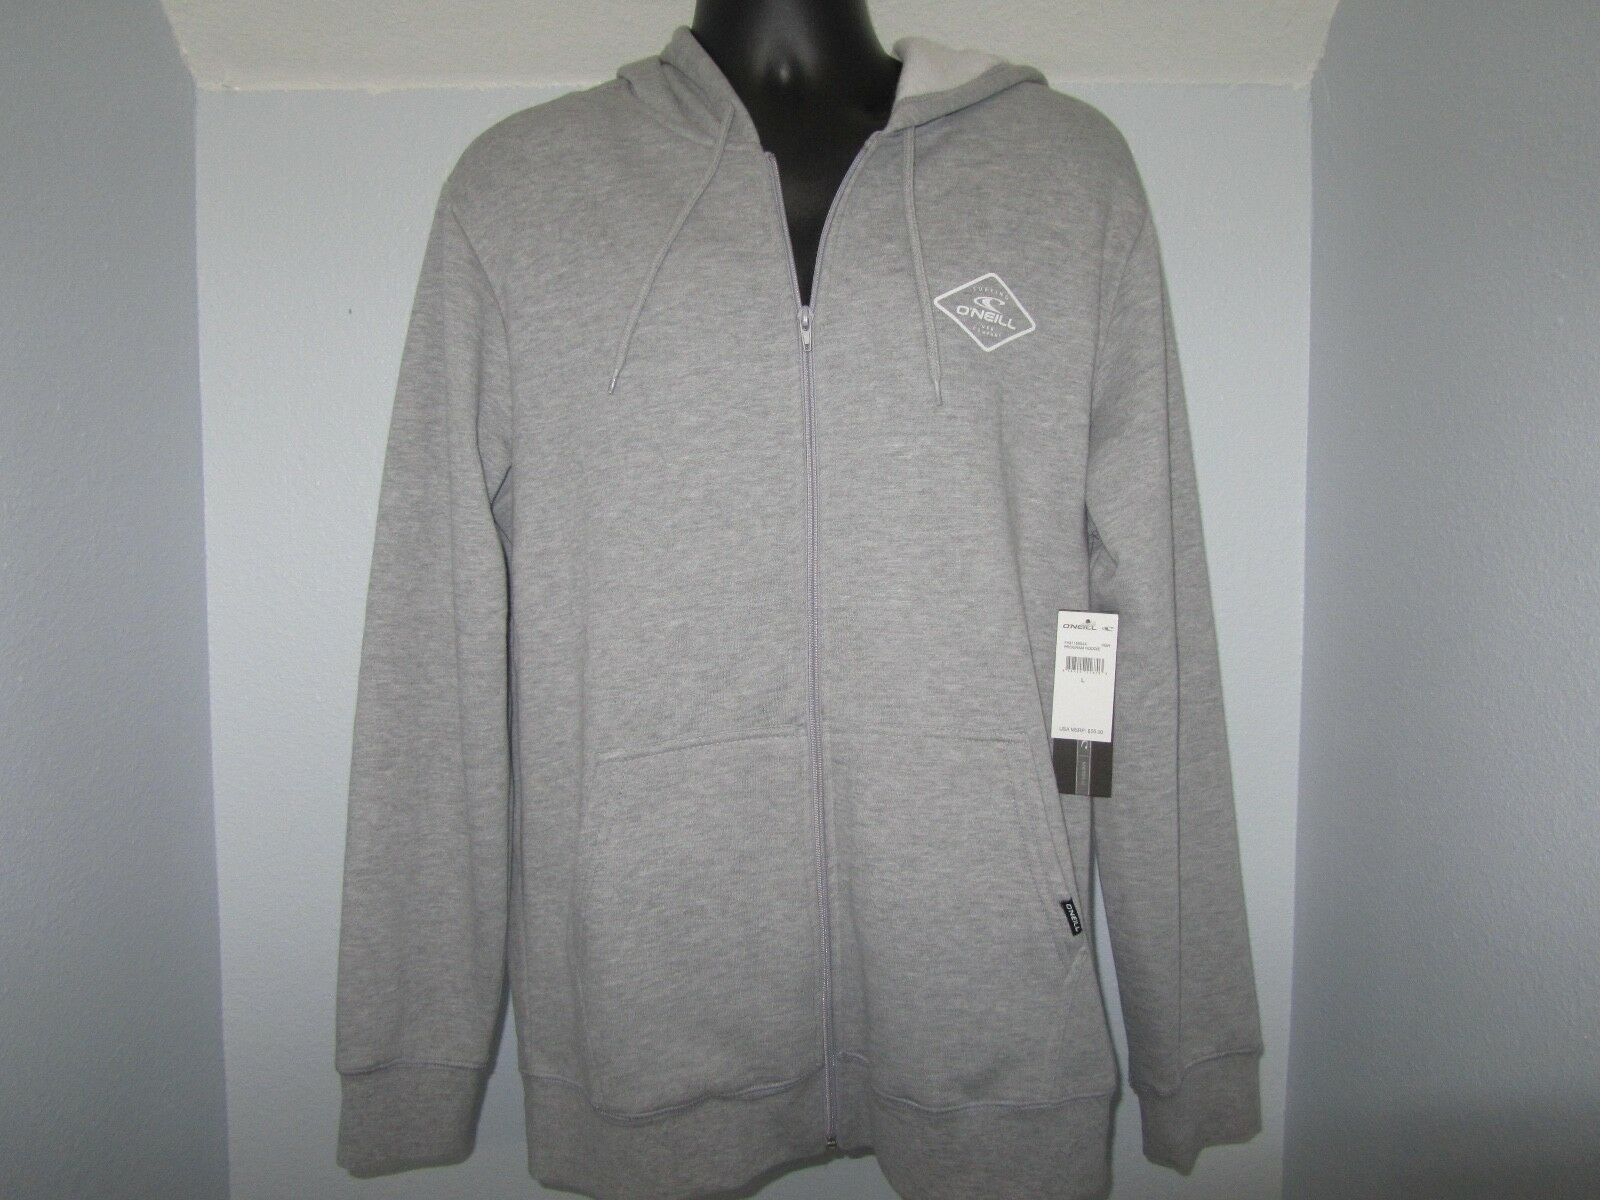 ZIP UP O'Neill  Mens LARGE Hoodie Grey Sweatshirt FAST FREE SHIPPING